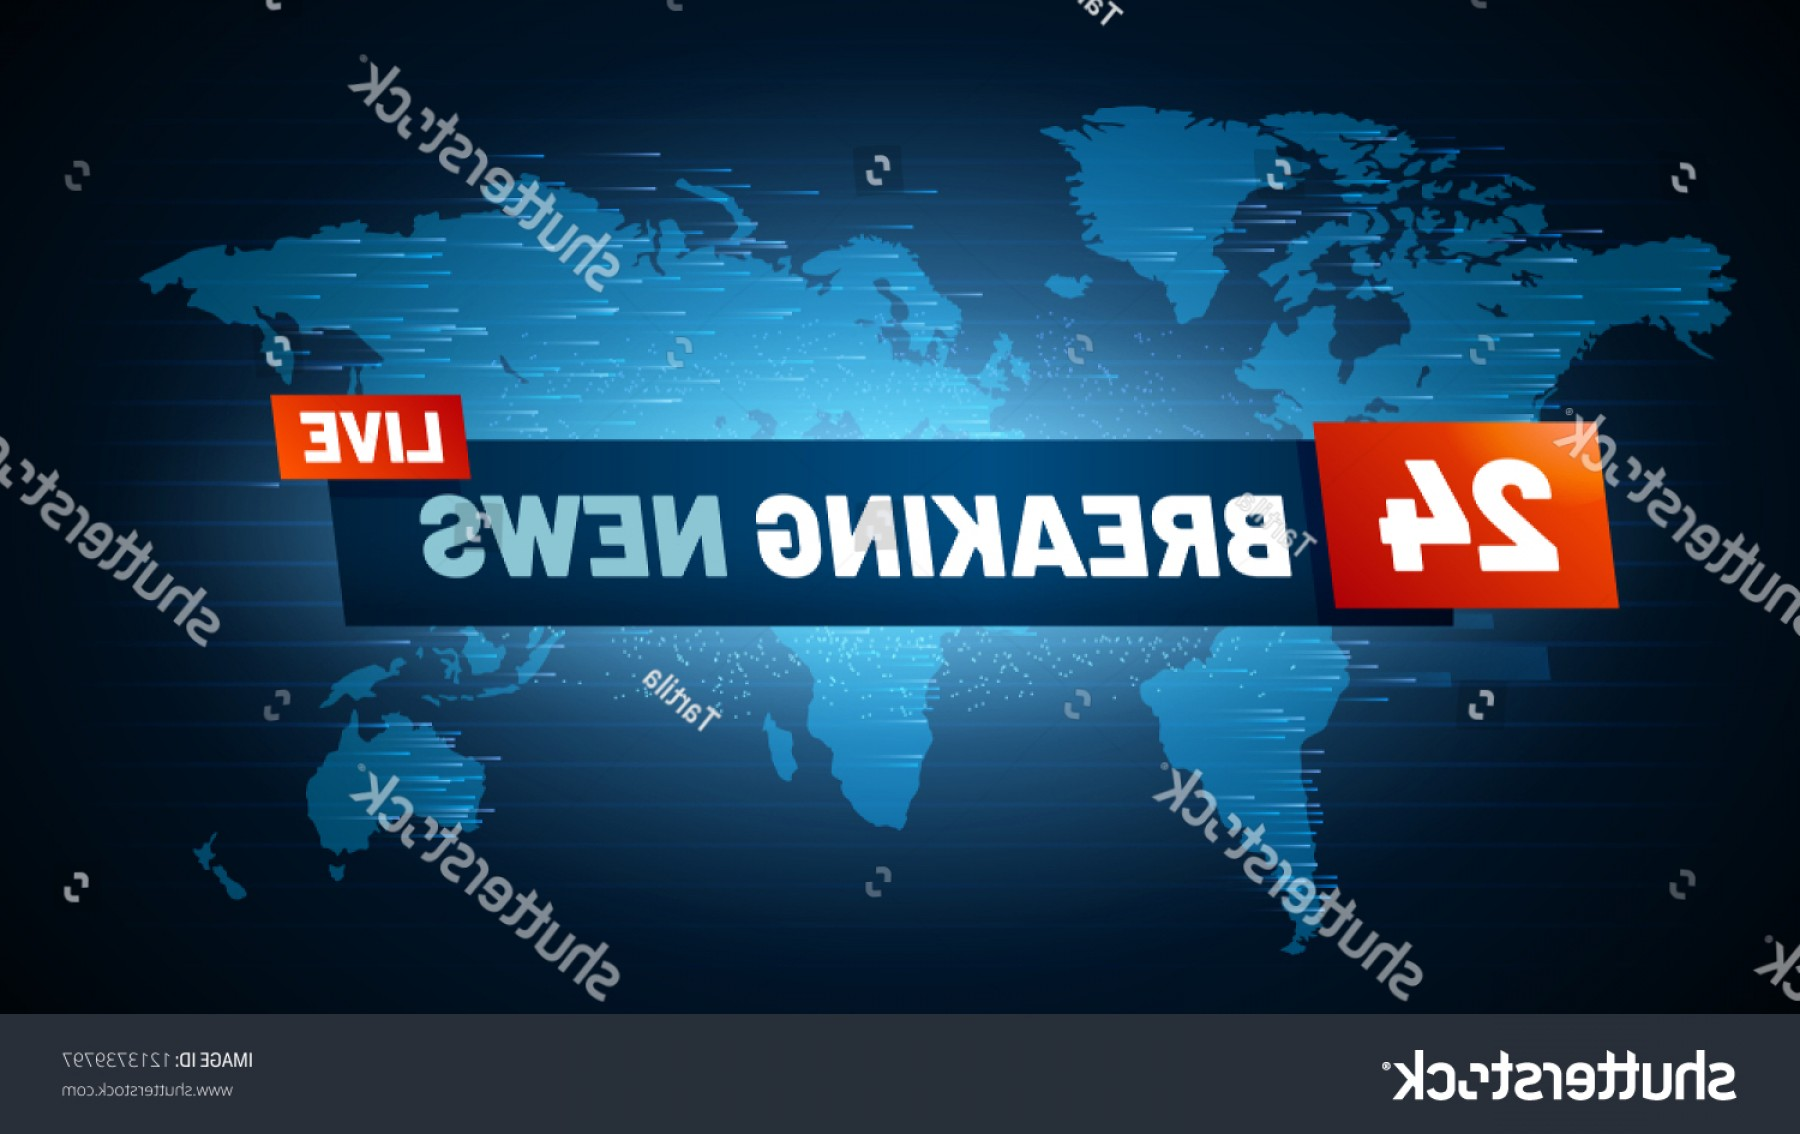 Abstract Vector Art Globe TV: Live Breaking News Background Streaming Internet